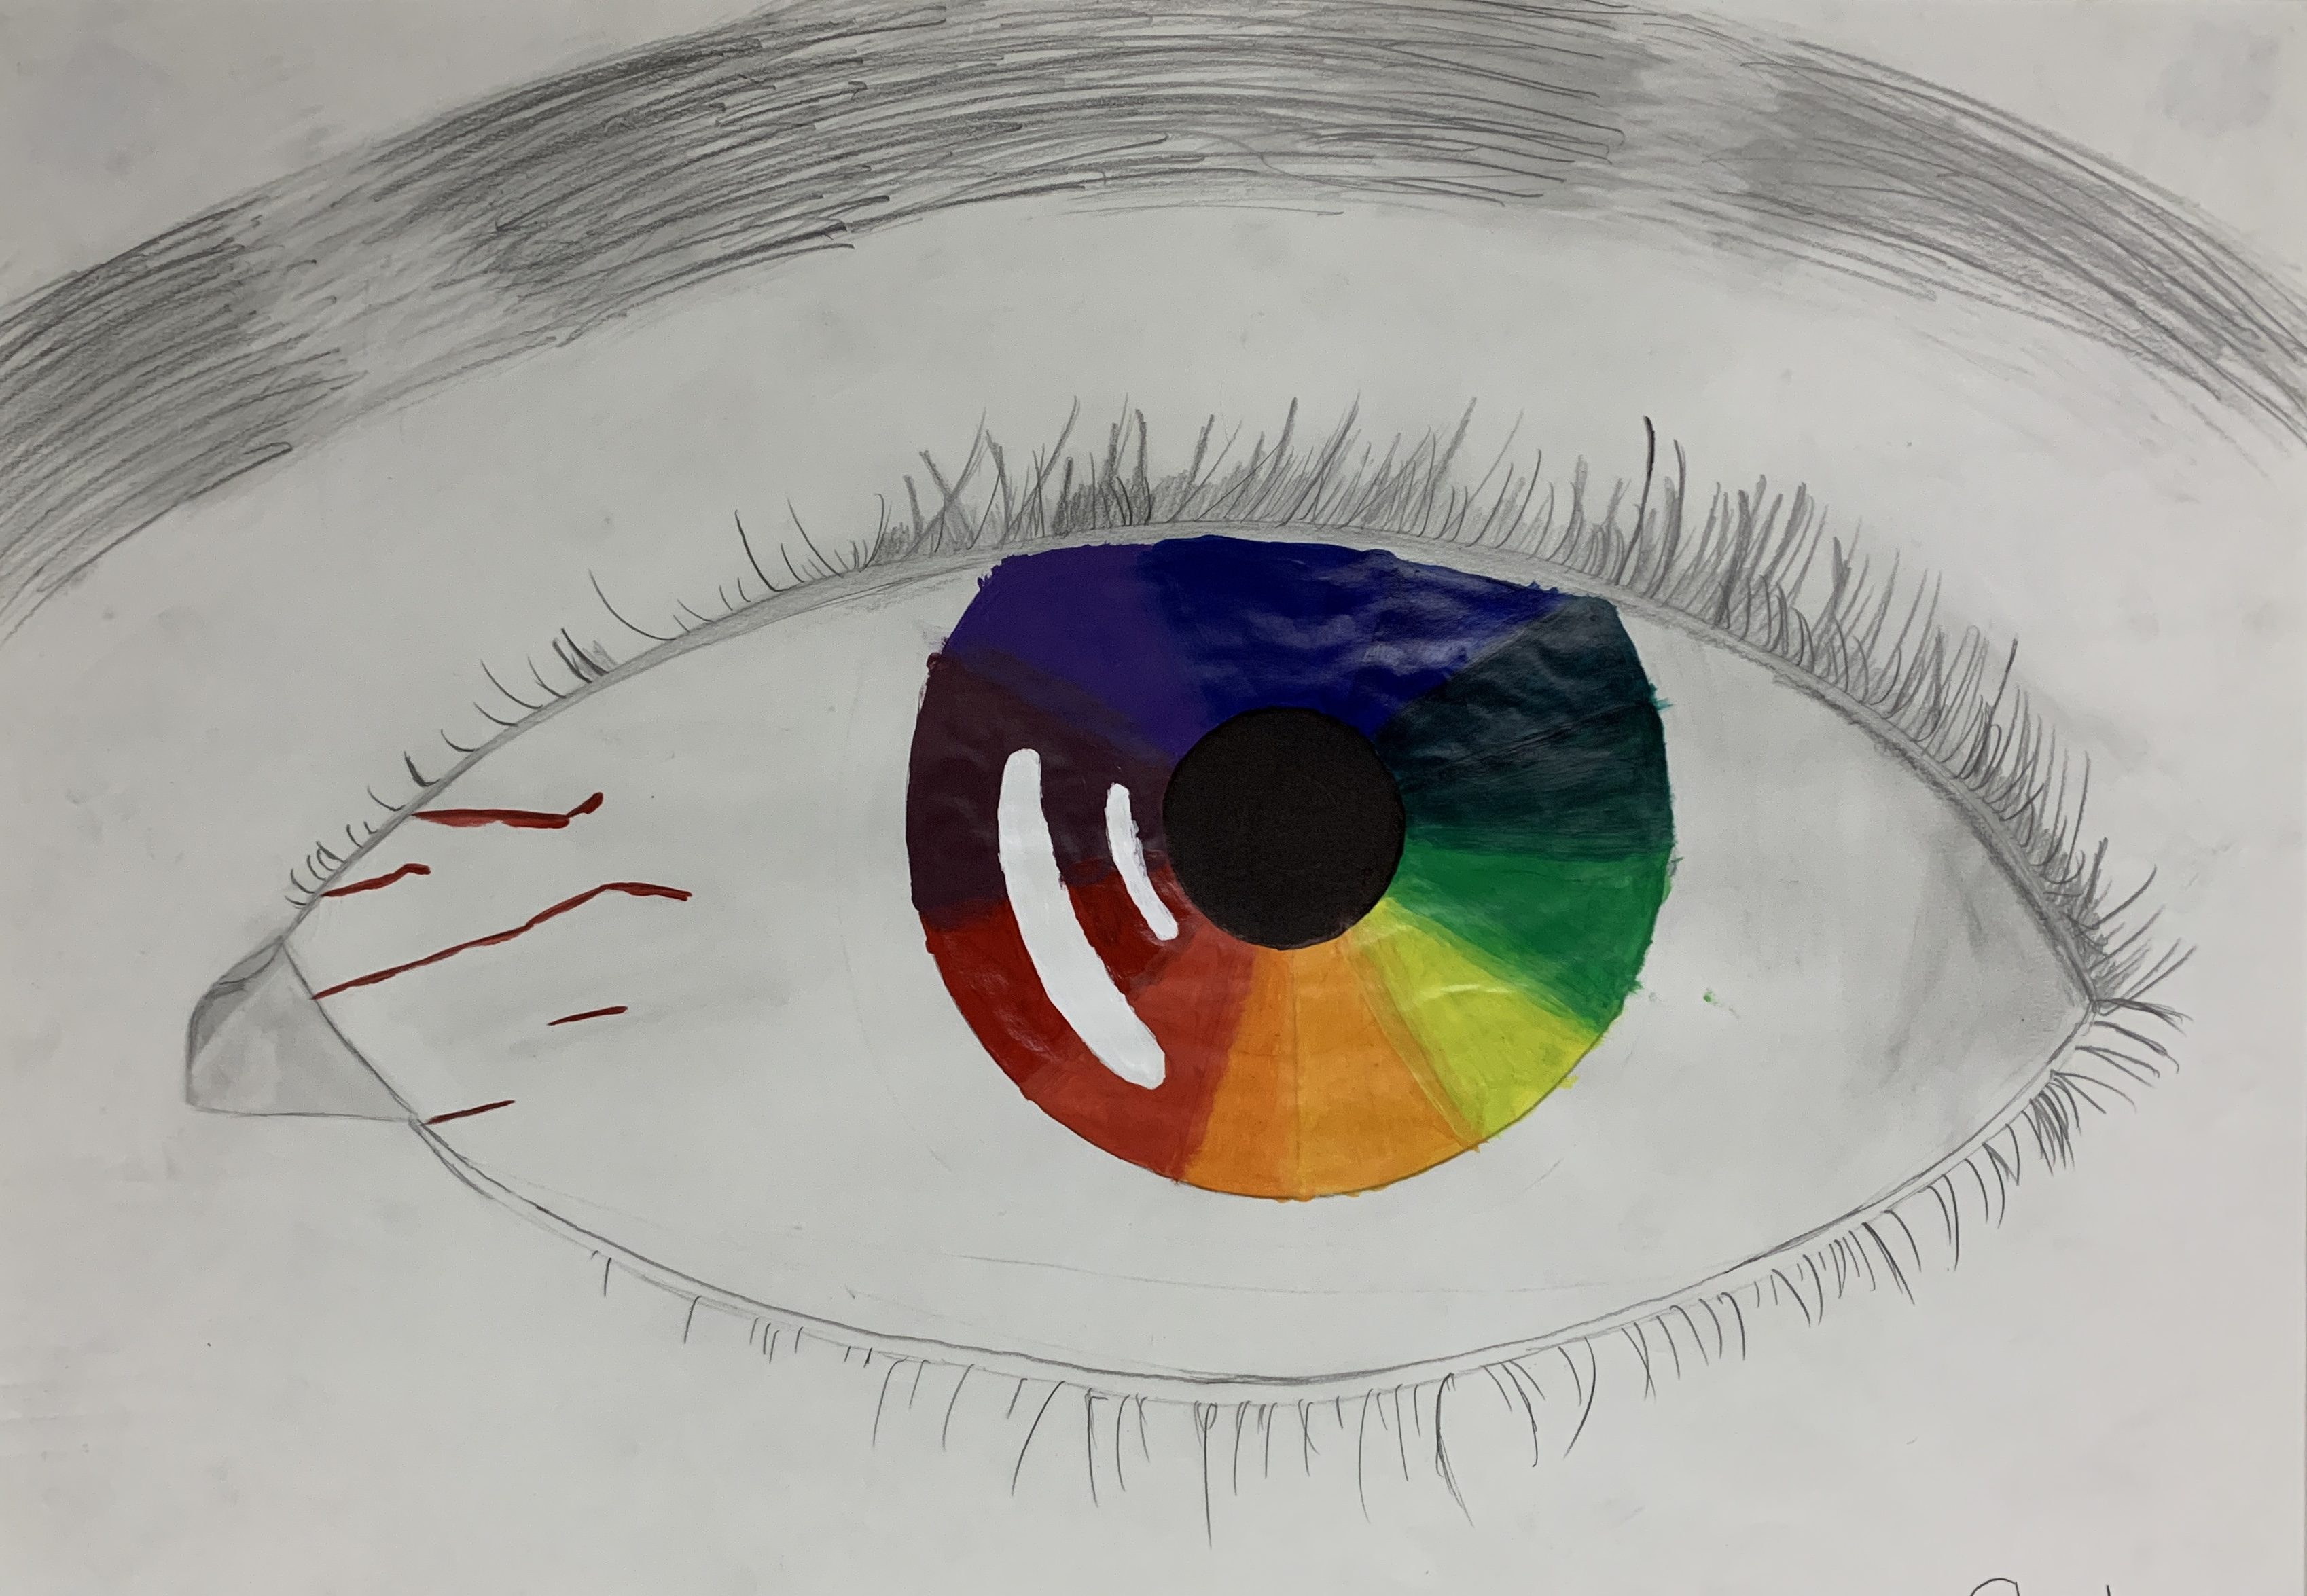 Students color wheel project - eye